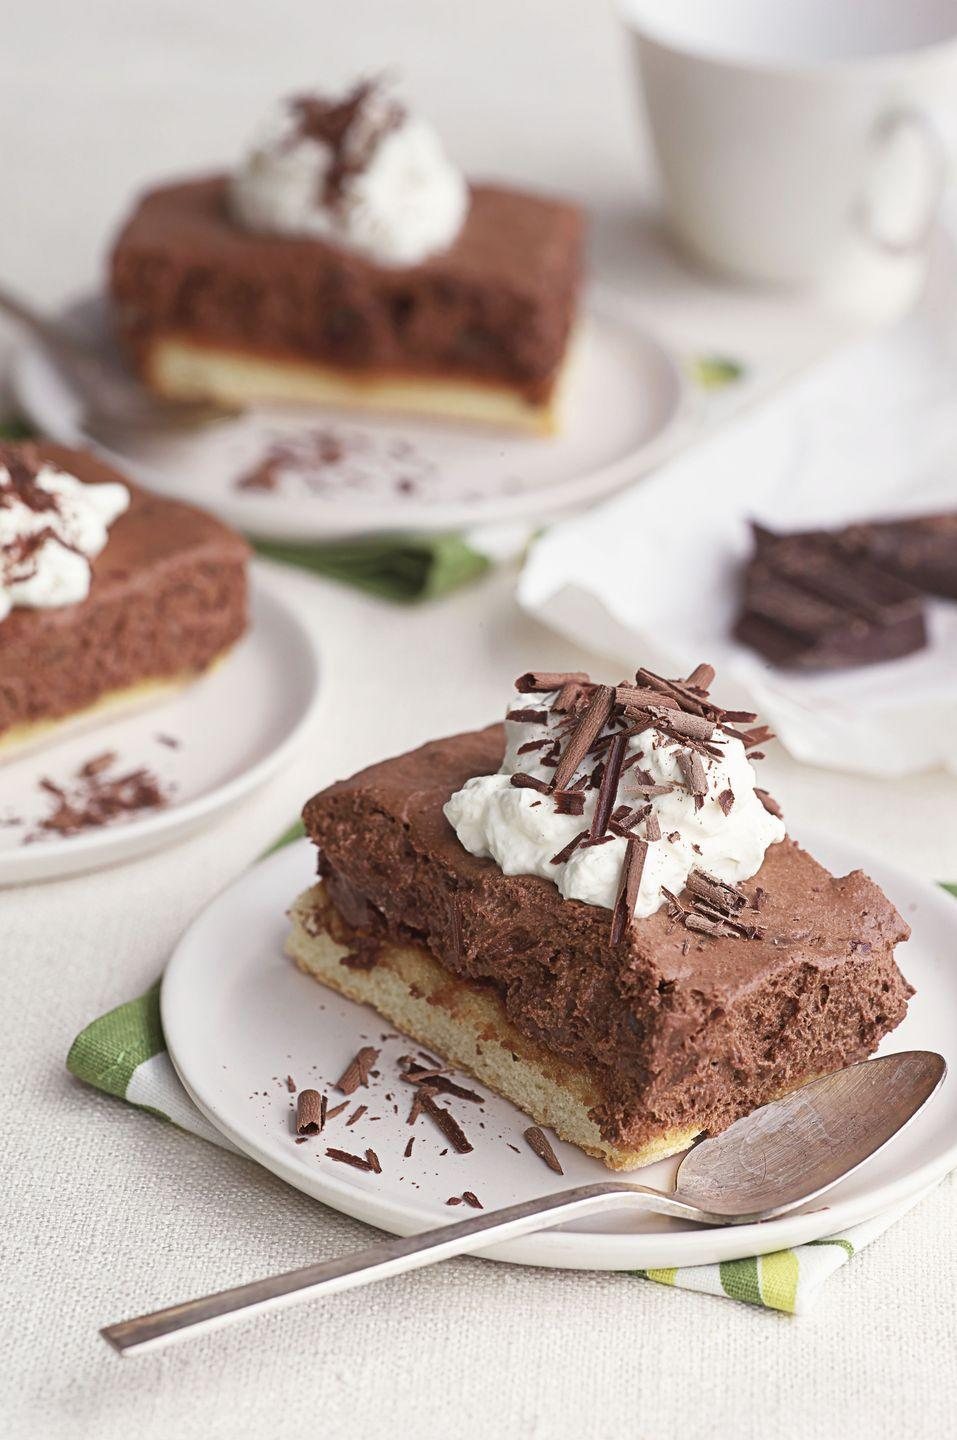 """<p>Melted chocolate folded into whipped cream creates a mousse-like mixture that gets piled on top of ladyfingers in this no-bake dessert. It's a celebration all on its own.</p><p><em><a href=""""https://www.goodhousekeeping.com/food-recipes/dessert/a37174/chocolate-icebox-cake-recipe/"""" rel=""""nofollow noopener"""" target=""""_blank"""" data-ylk=""""slk:Get the recipe for Chocolate Icebox Cake »"""" class=""""link rapid-noclick-resp"""">Get the recipe for Chocolate Icebox Cake »</a></em></p>"""